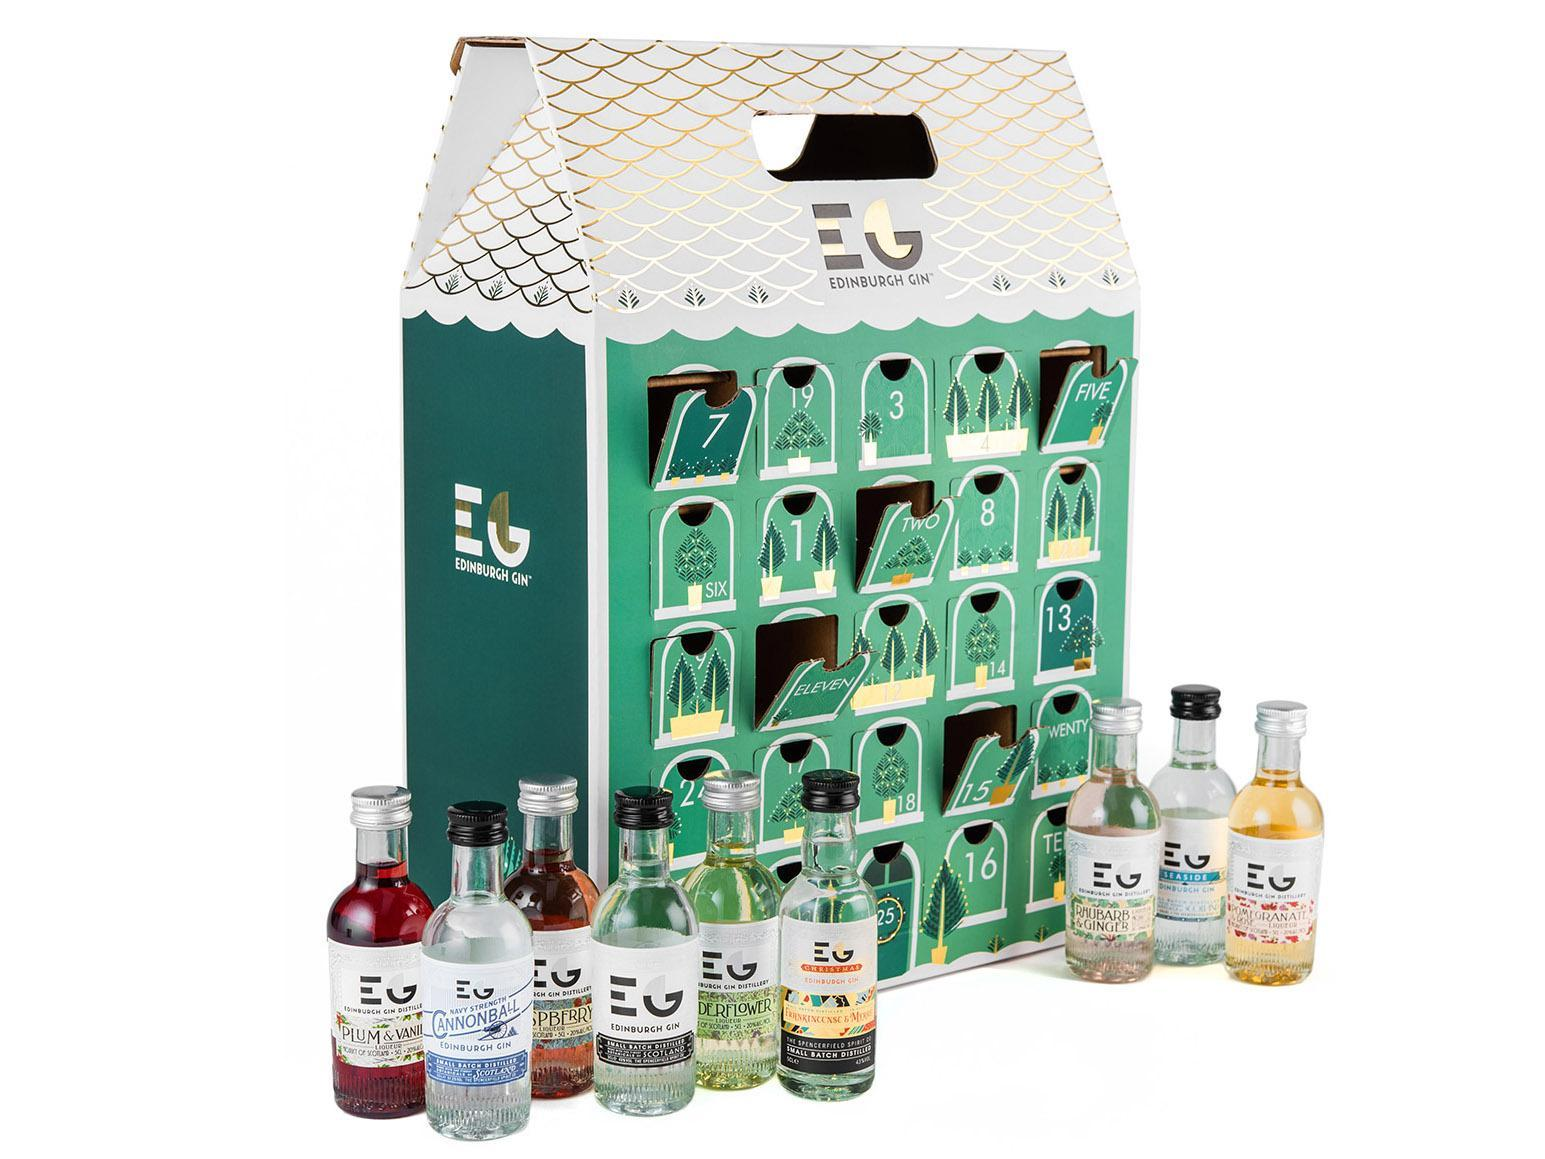 Virgin Wines Advent Calendar.10 Best Alcoholic Advent Calendars For Christmas 2018 The Independent